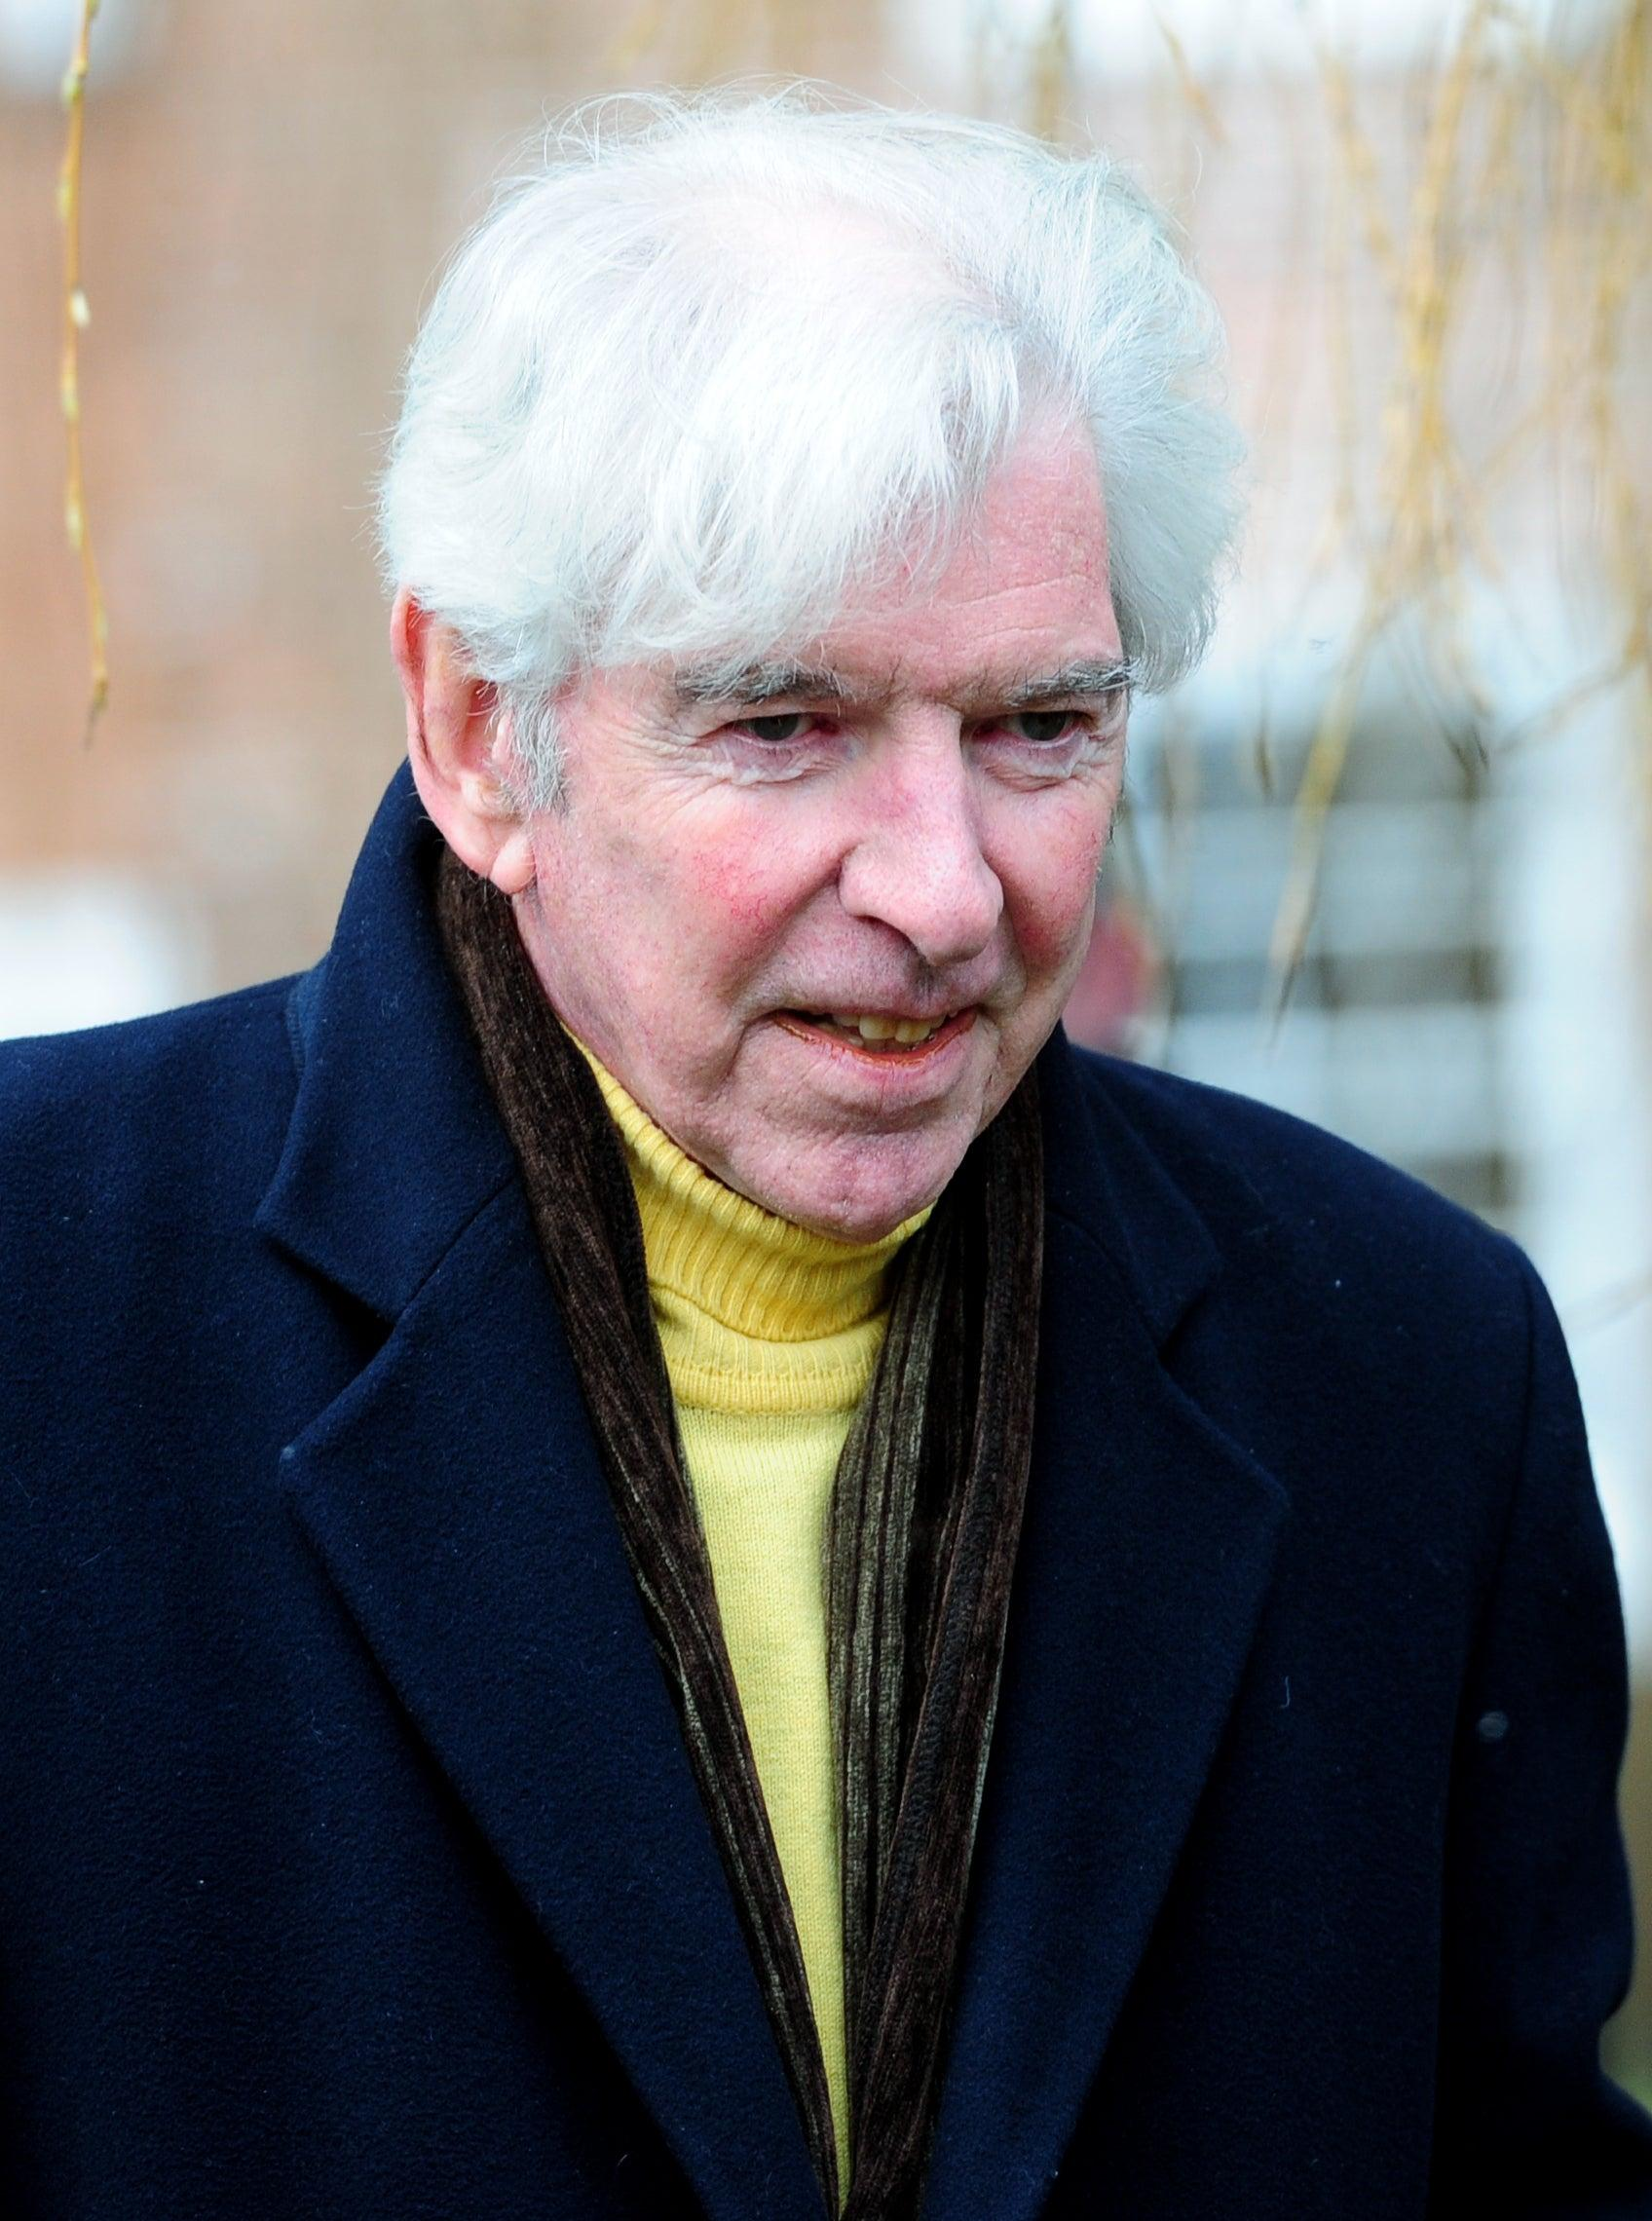 Comedian Tom O'Connor dies aged 81 after battle with Parkinson's